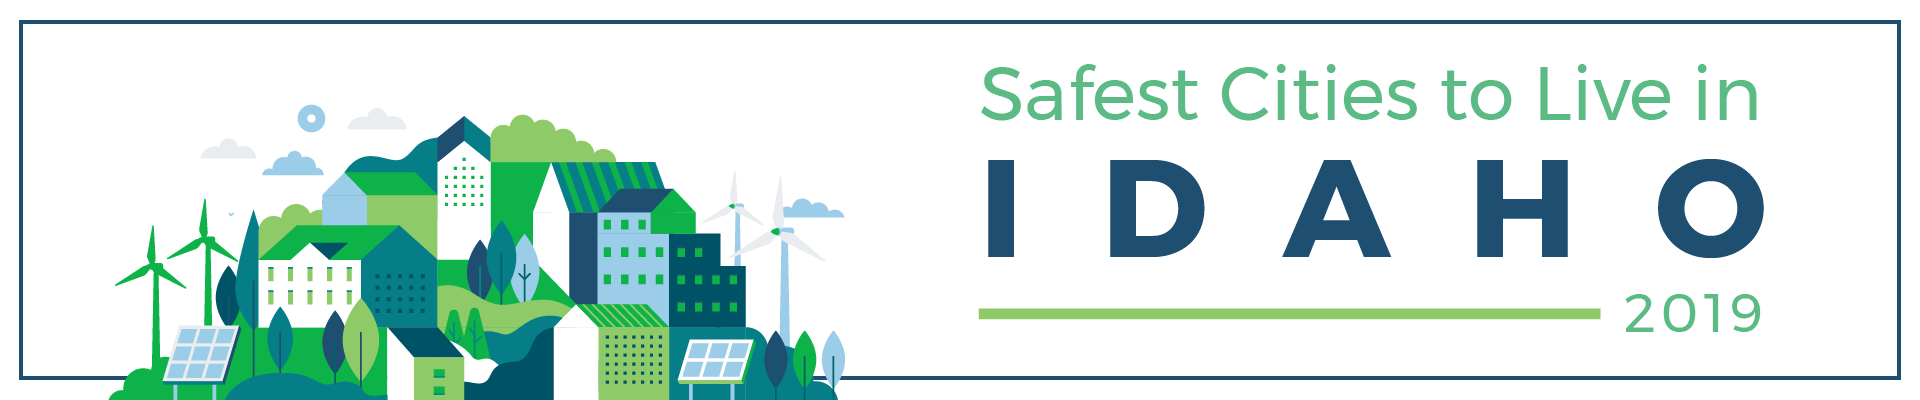 header - safest_cities_idaho_2019